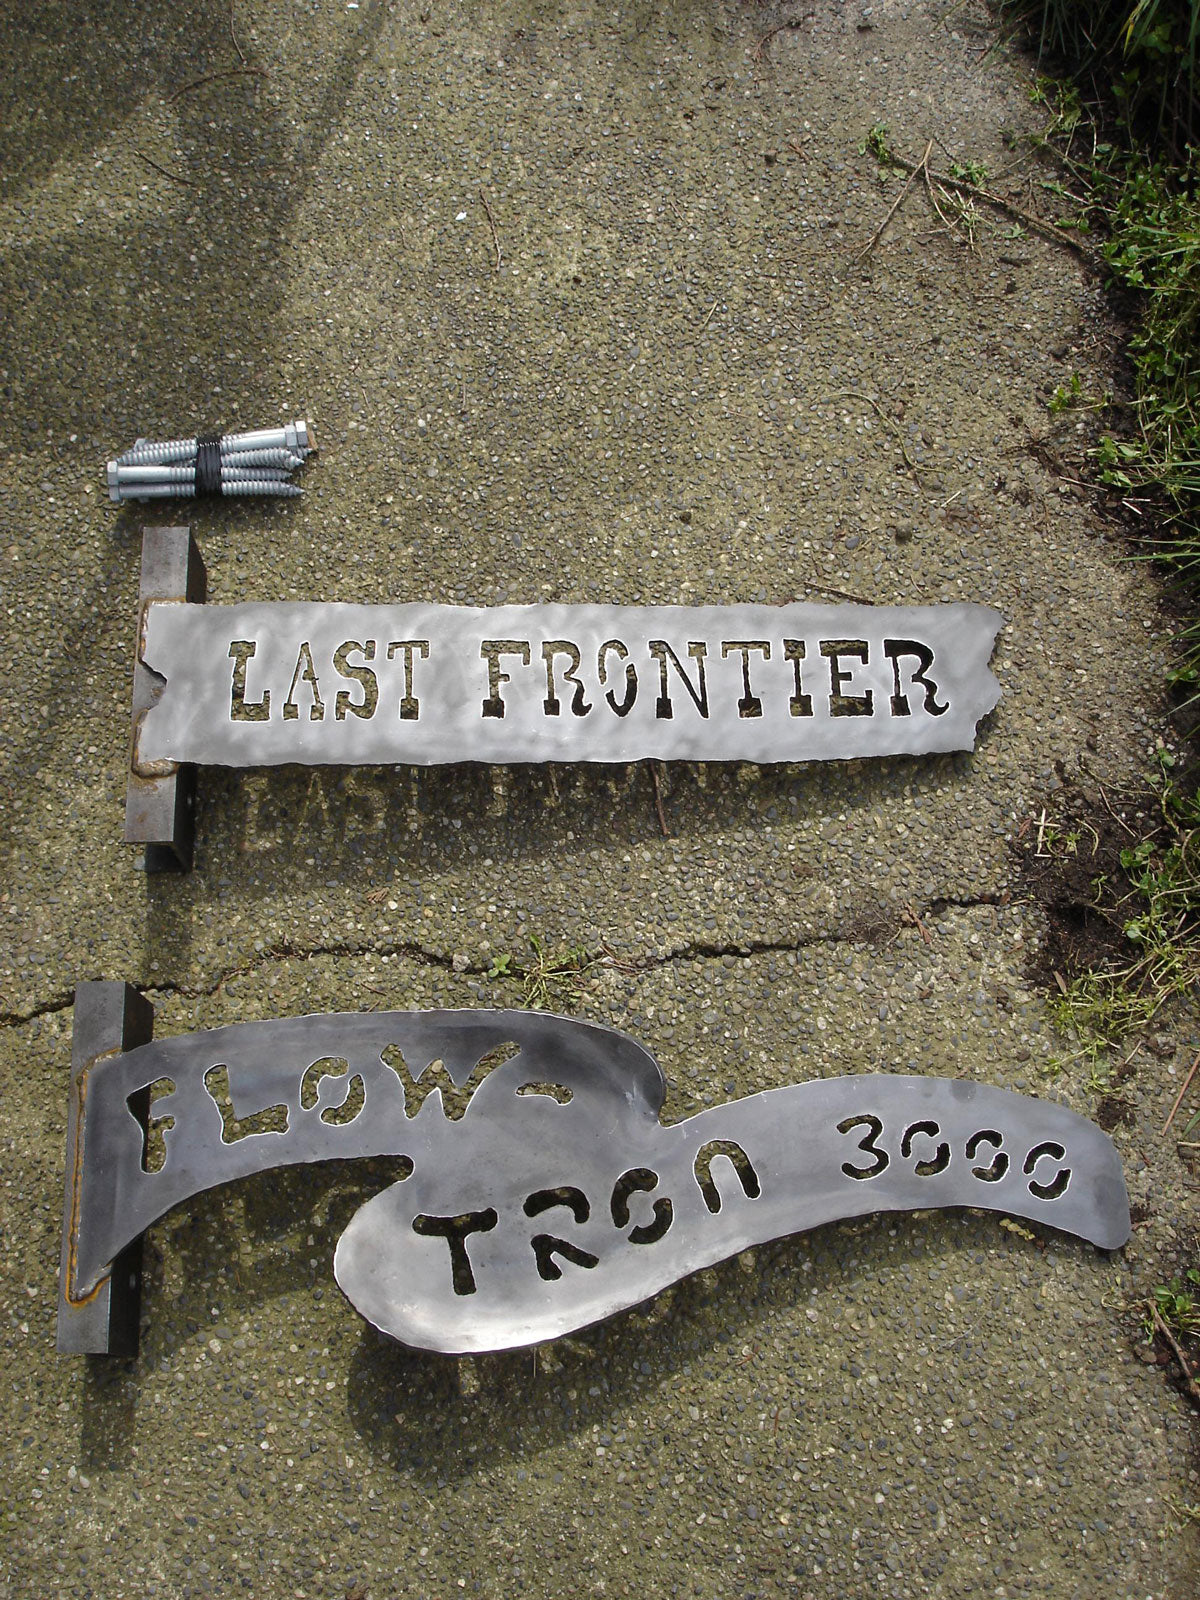 Last Frontier & Flowtron 3000 signs - Tokul